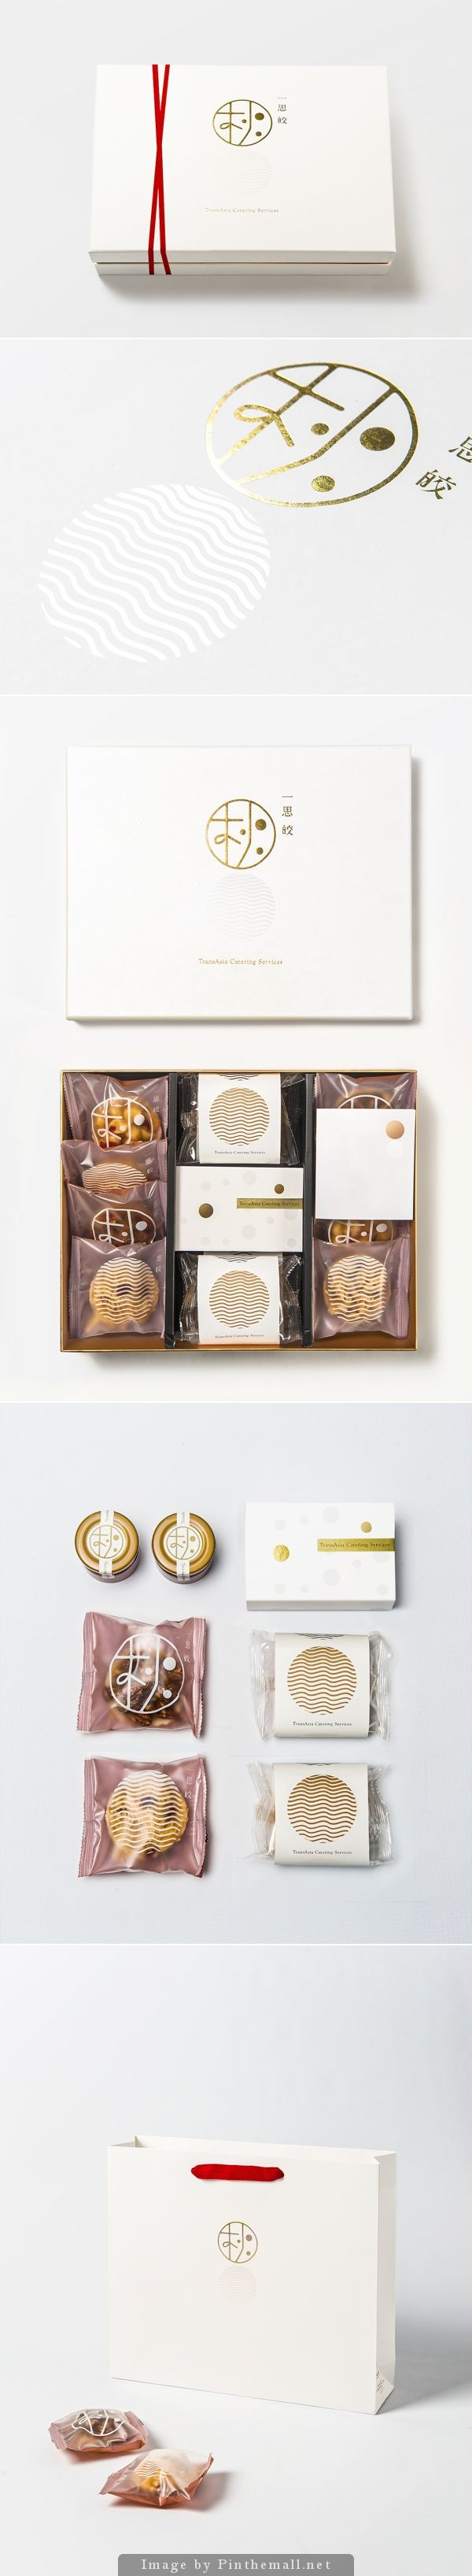 Beautiful #packaging for TransAsia's Mid-autumn festival gifts curated by Packaging Diva PD created via https://www.behance.net/gallery/-/13223725